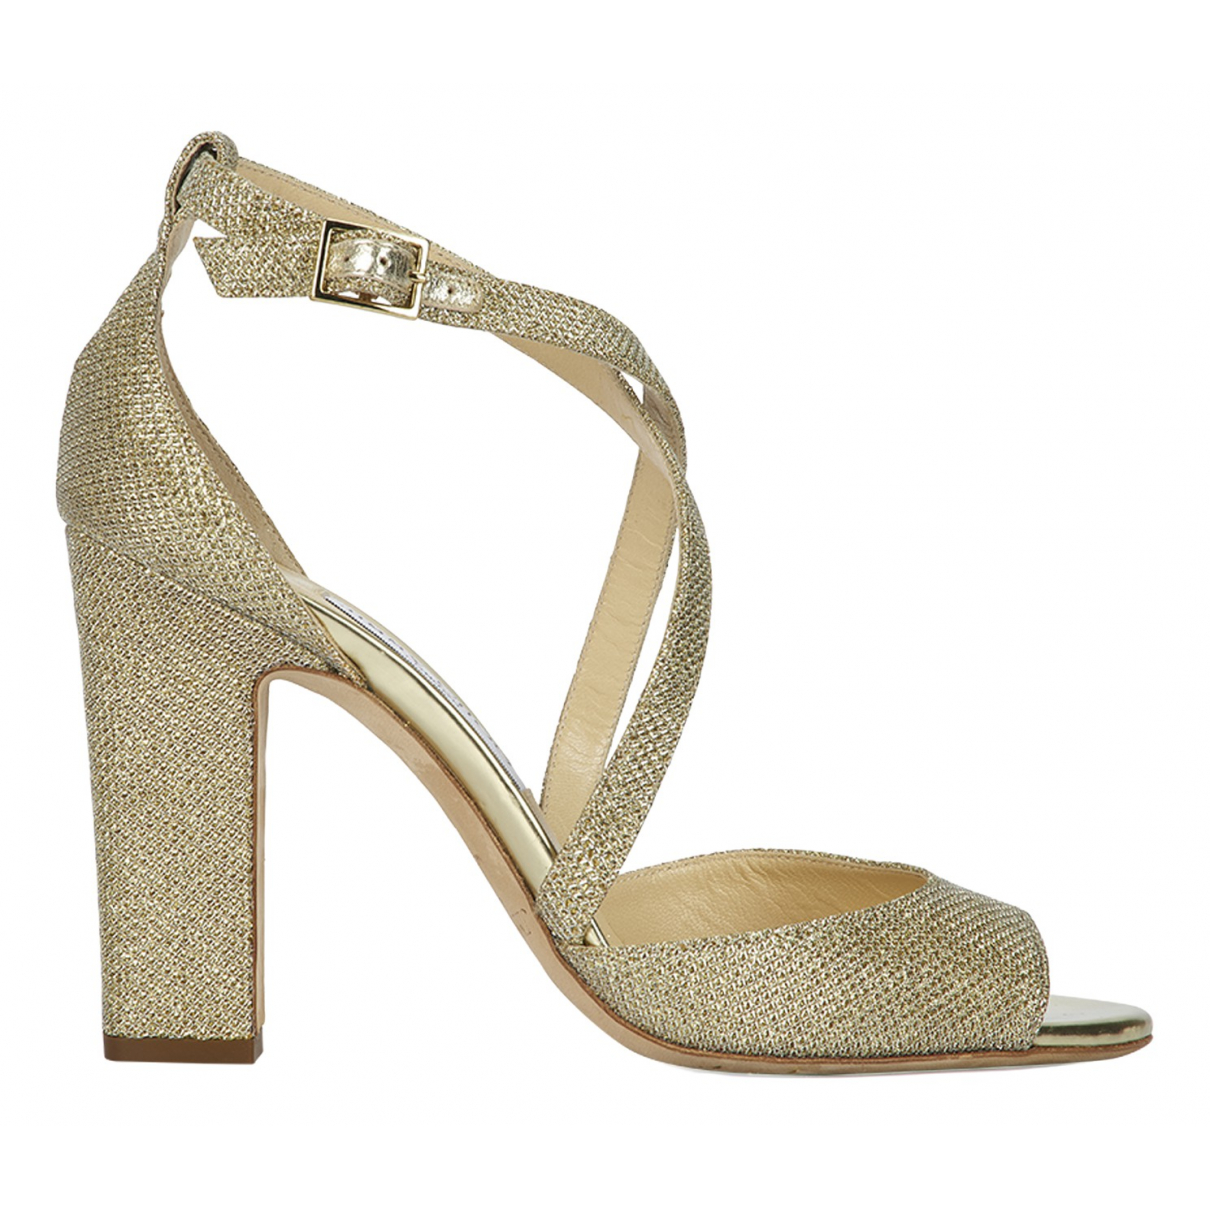 Jimmy Choo N Gold Leather Sandals for Women 6 UK